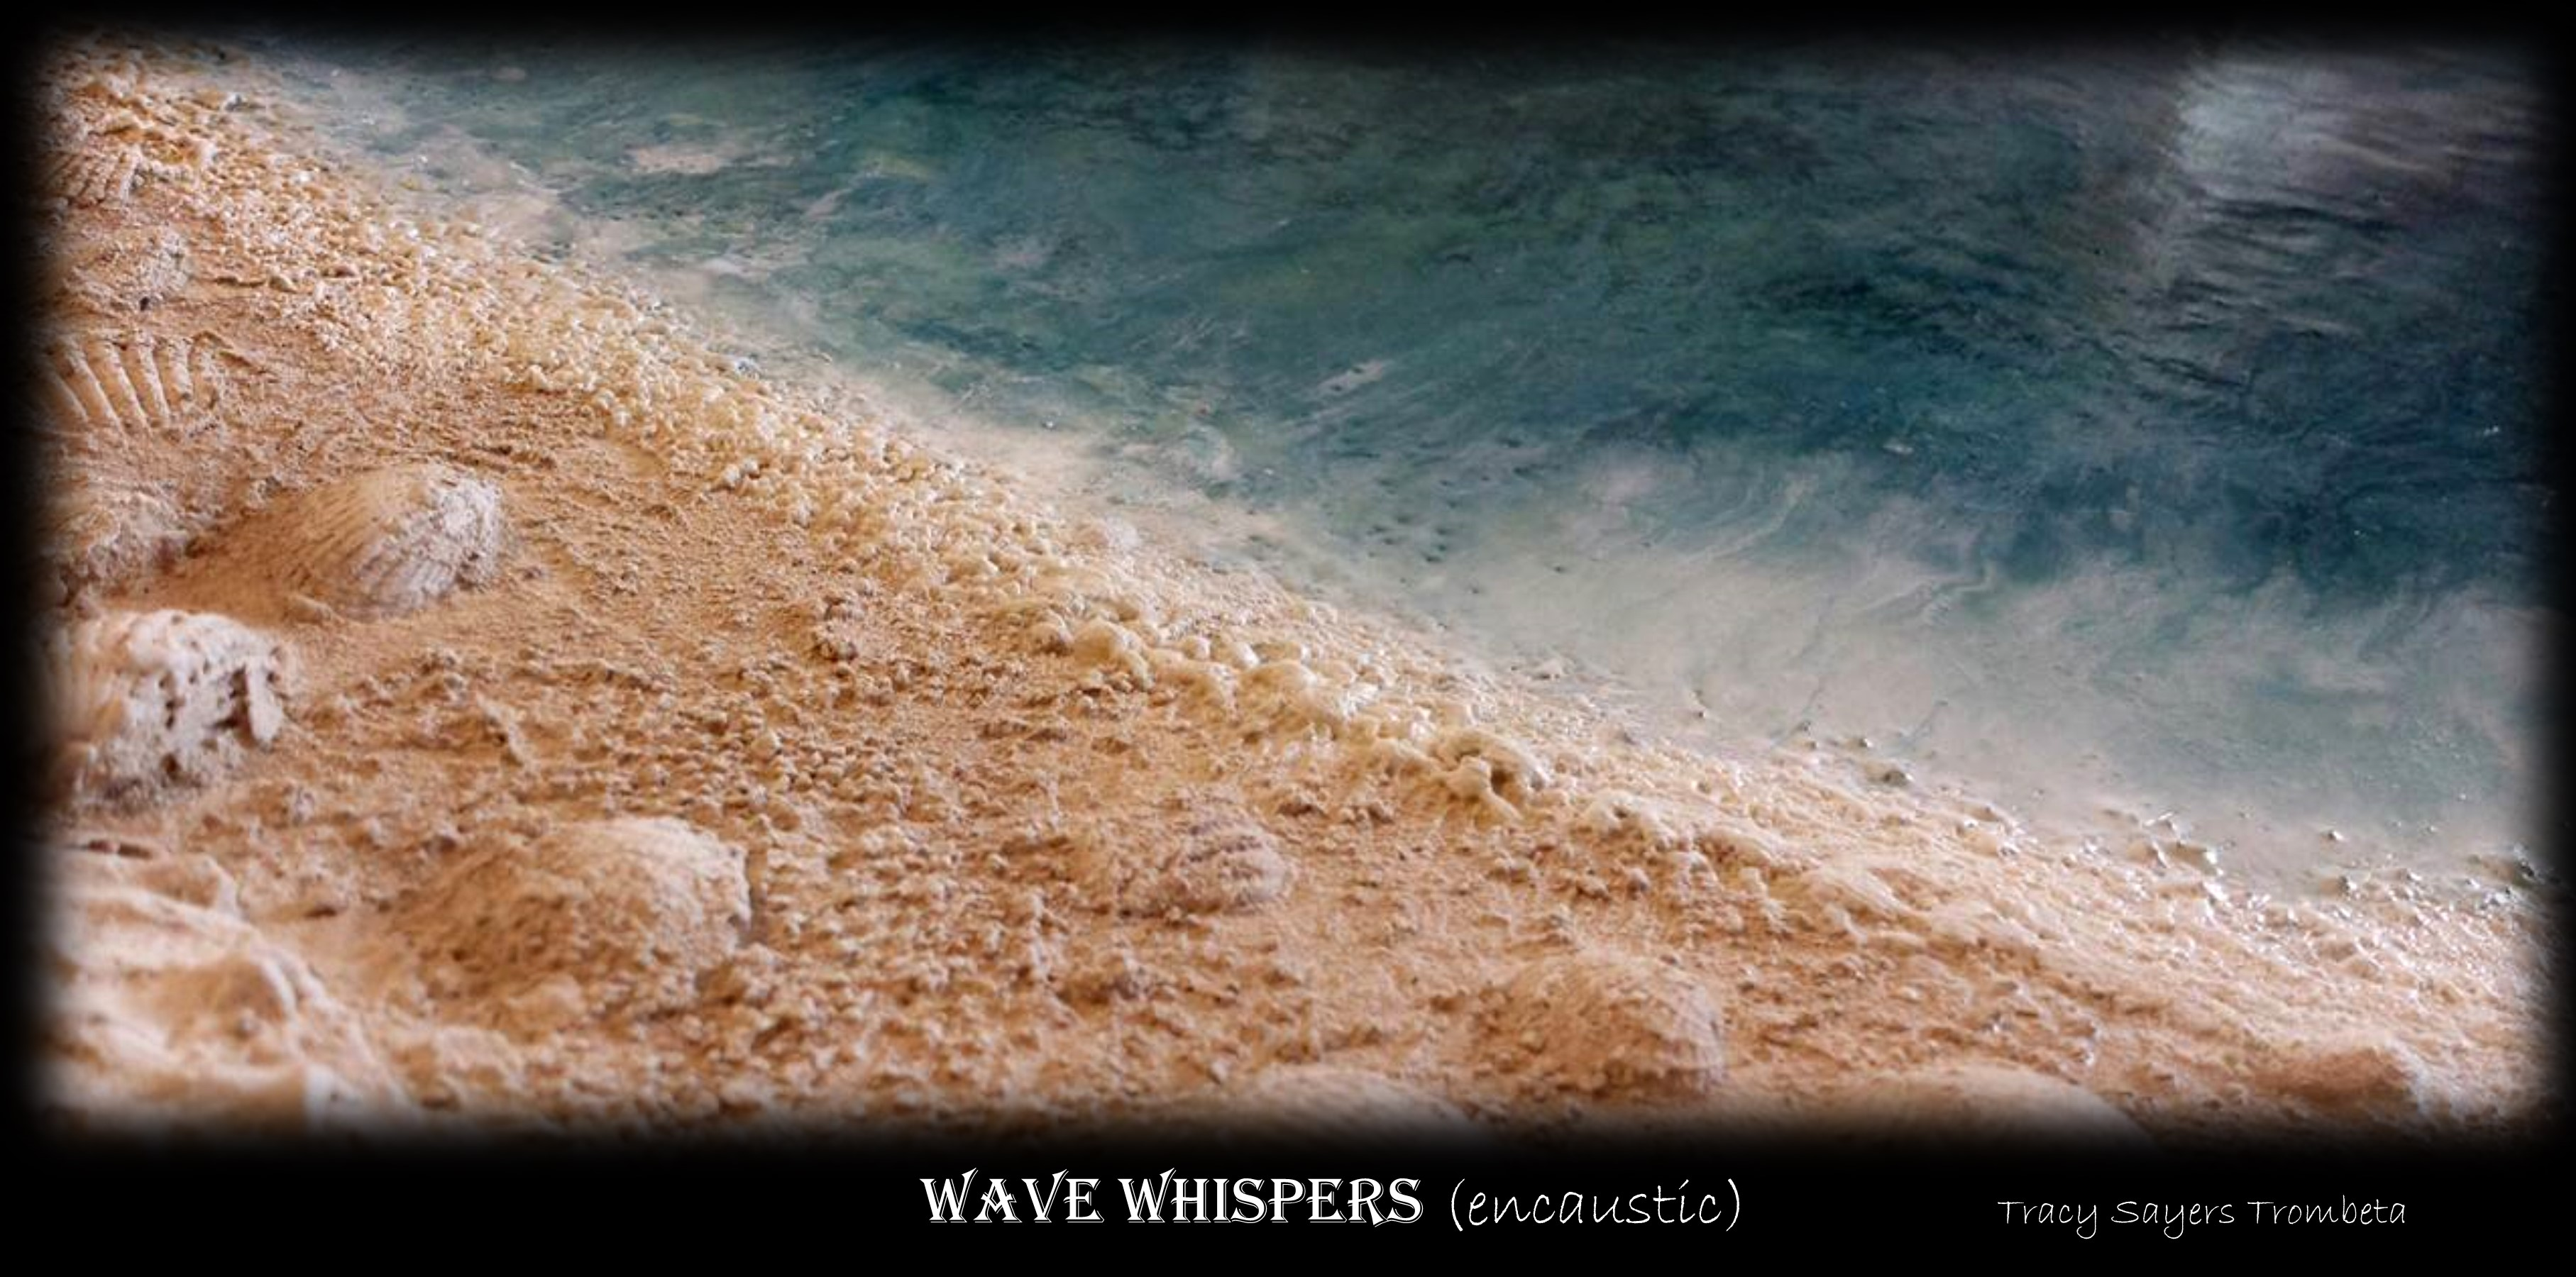 Wave Whispers (encaustic)